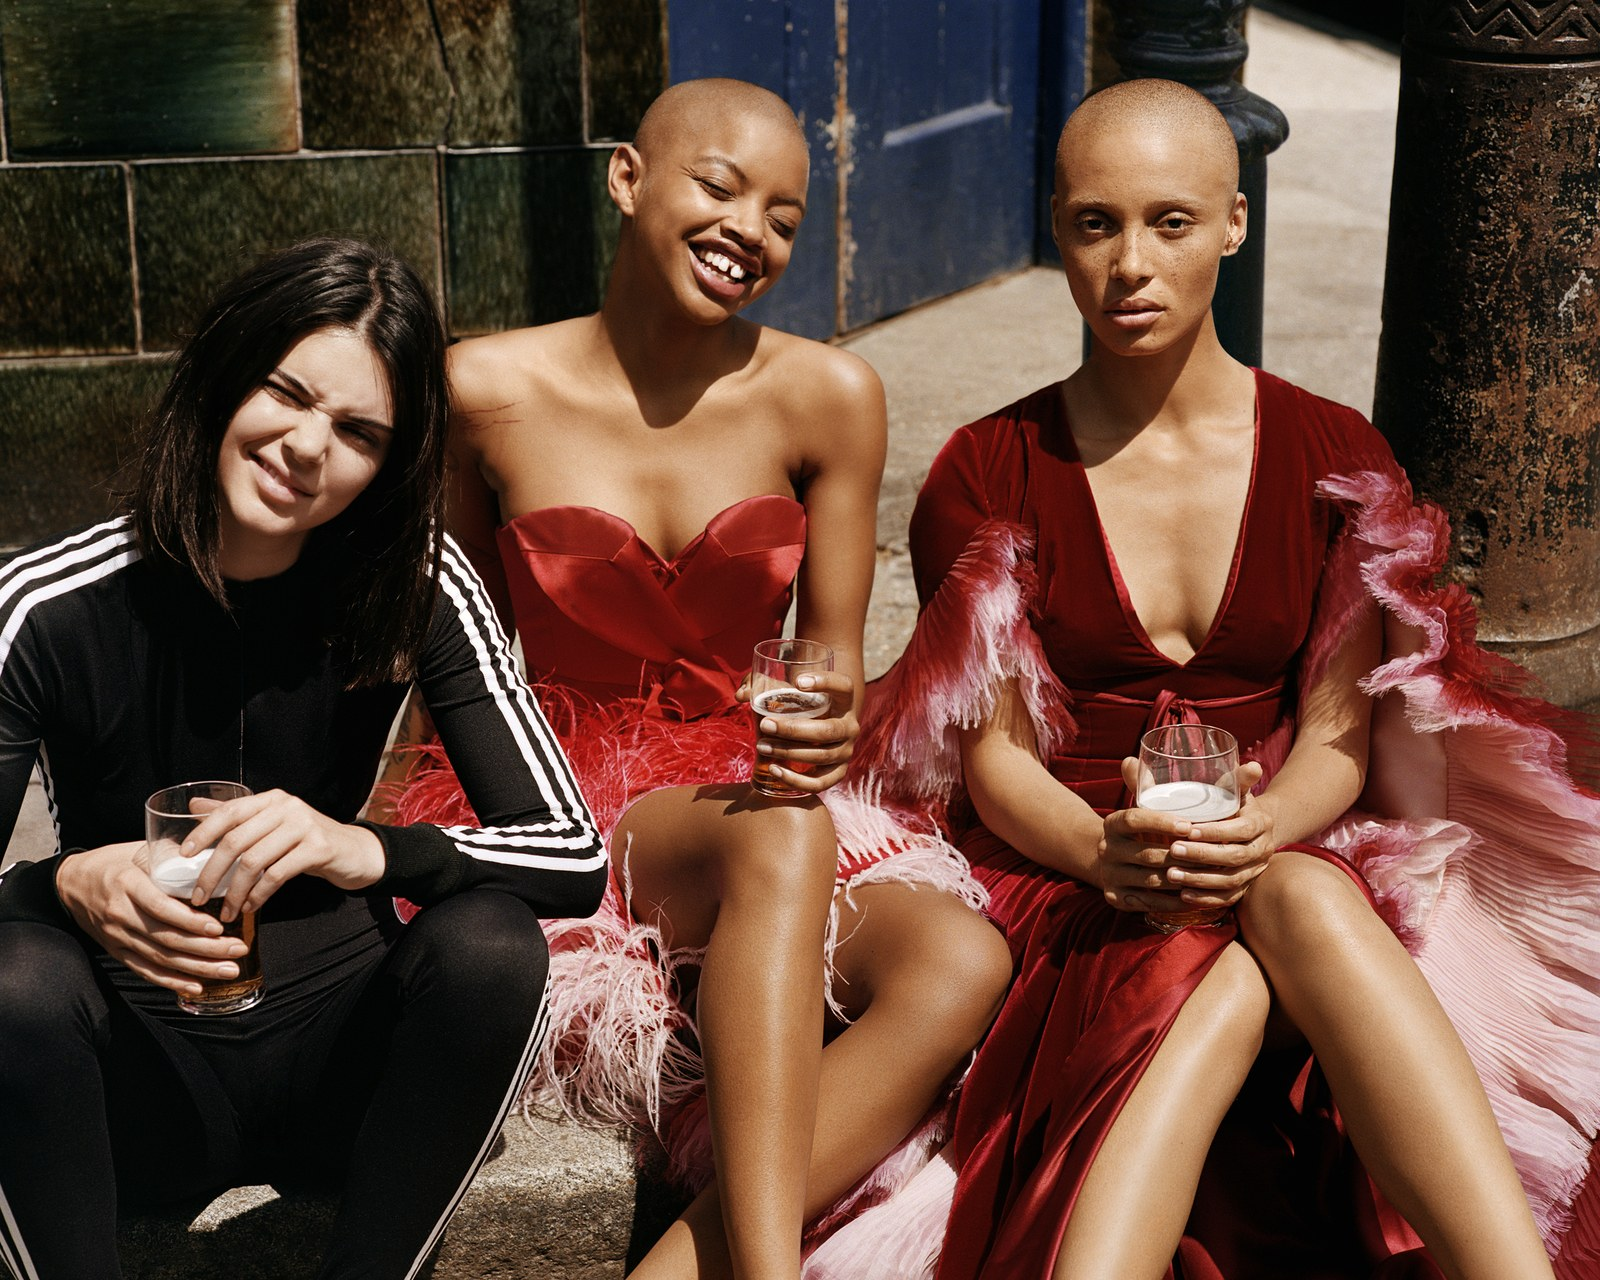 KENDALL JENNER in W Magazine's October Issue image